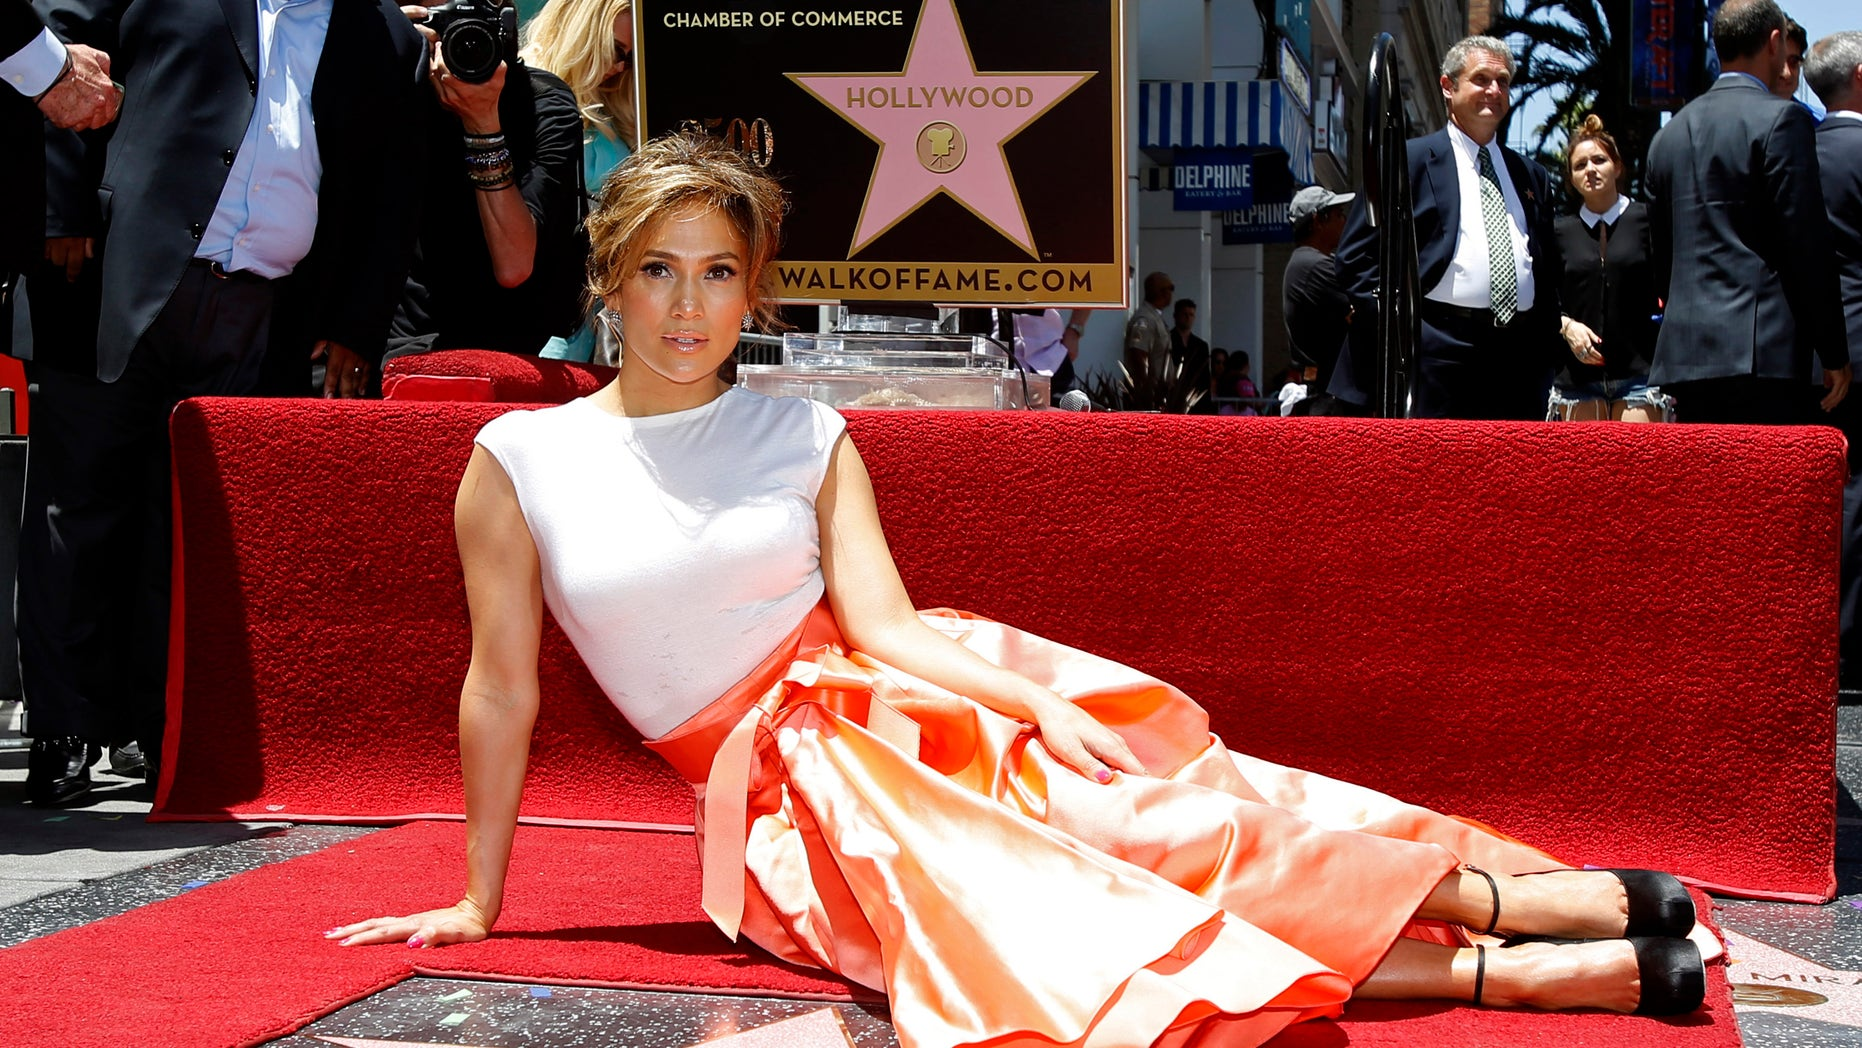 June 20, 2013. Jennifer Lopez poses on her star after it was unveiled on the Walk of Fame in Hollywood, California.